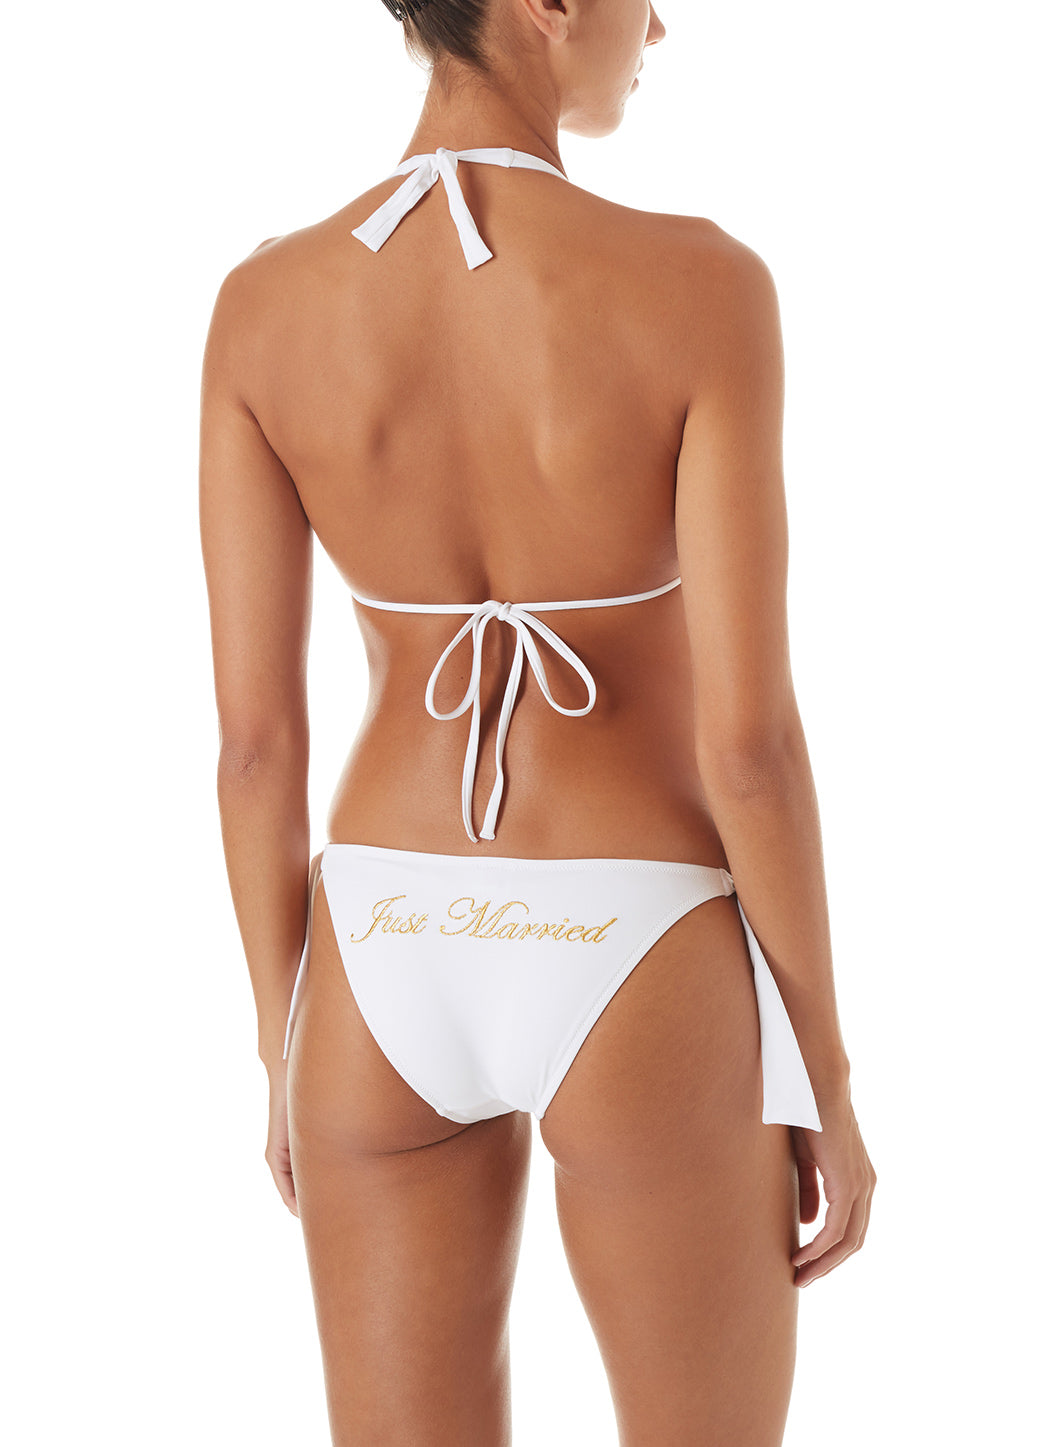 The Martinique Personalised Embroidered Bikini